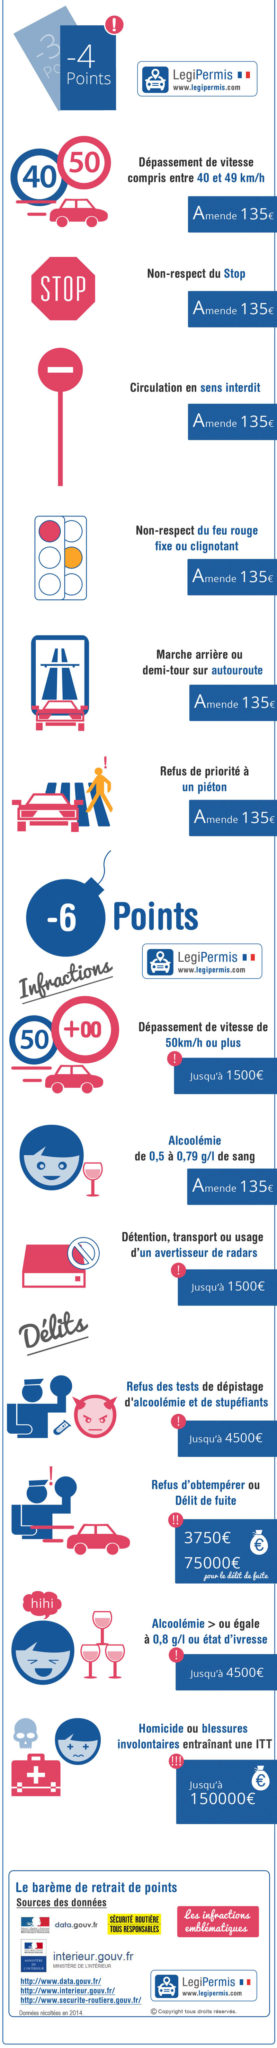 retrait points permis bar me infractions cours de code en ligne. Black Bedroom Furniture Sets. Home Design Ideas